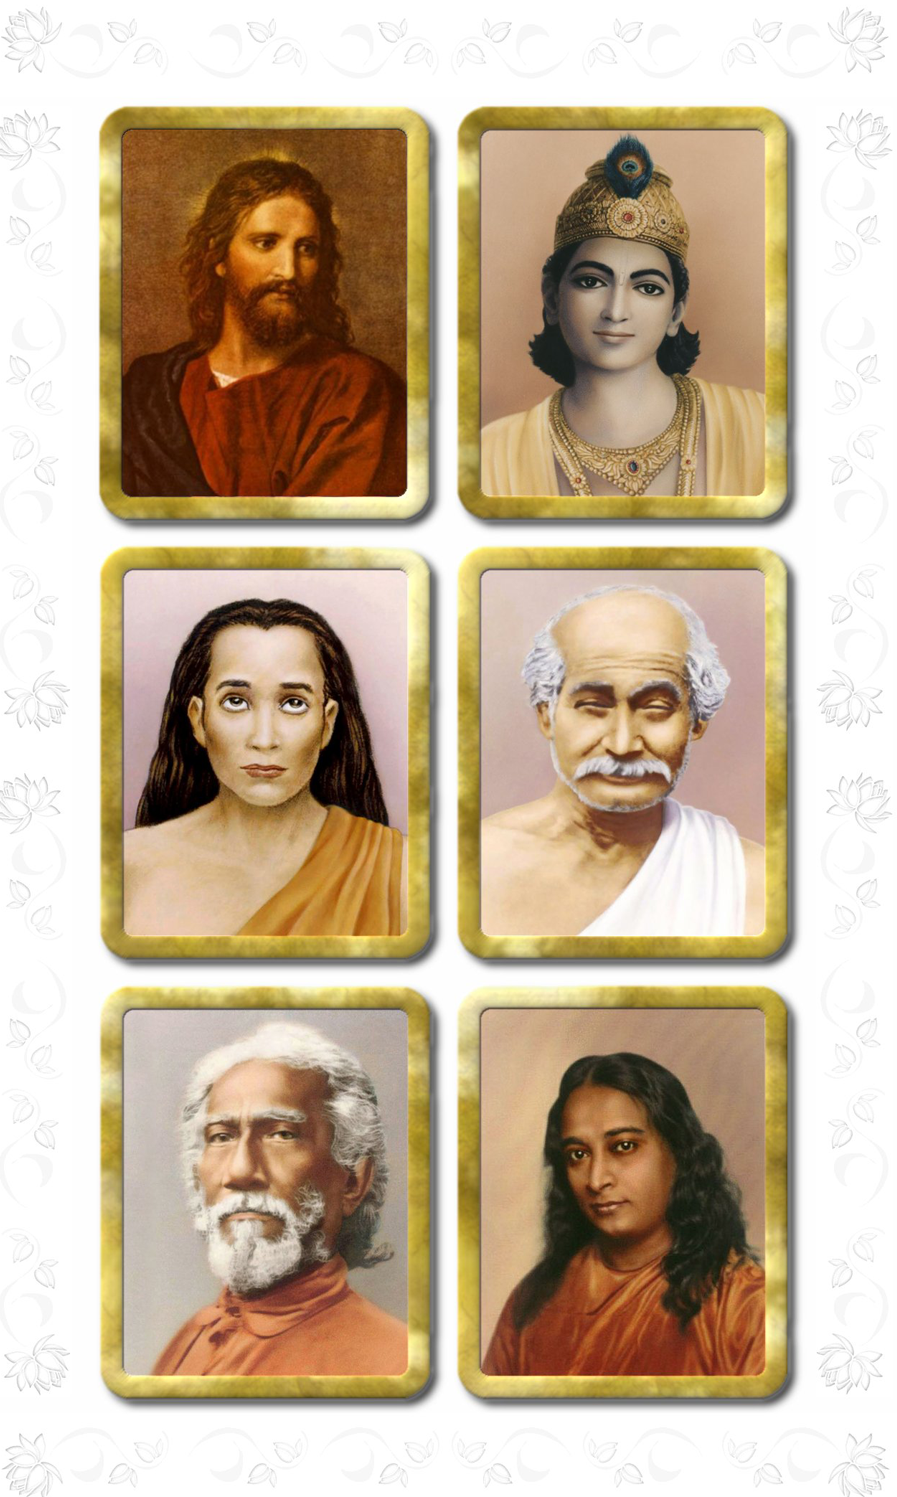 Gurus of the Self-Realization Fellowship